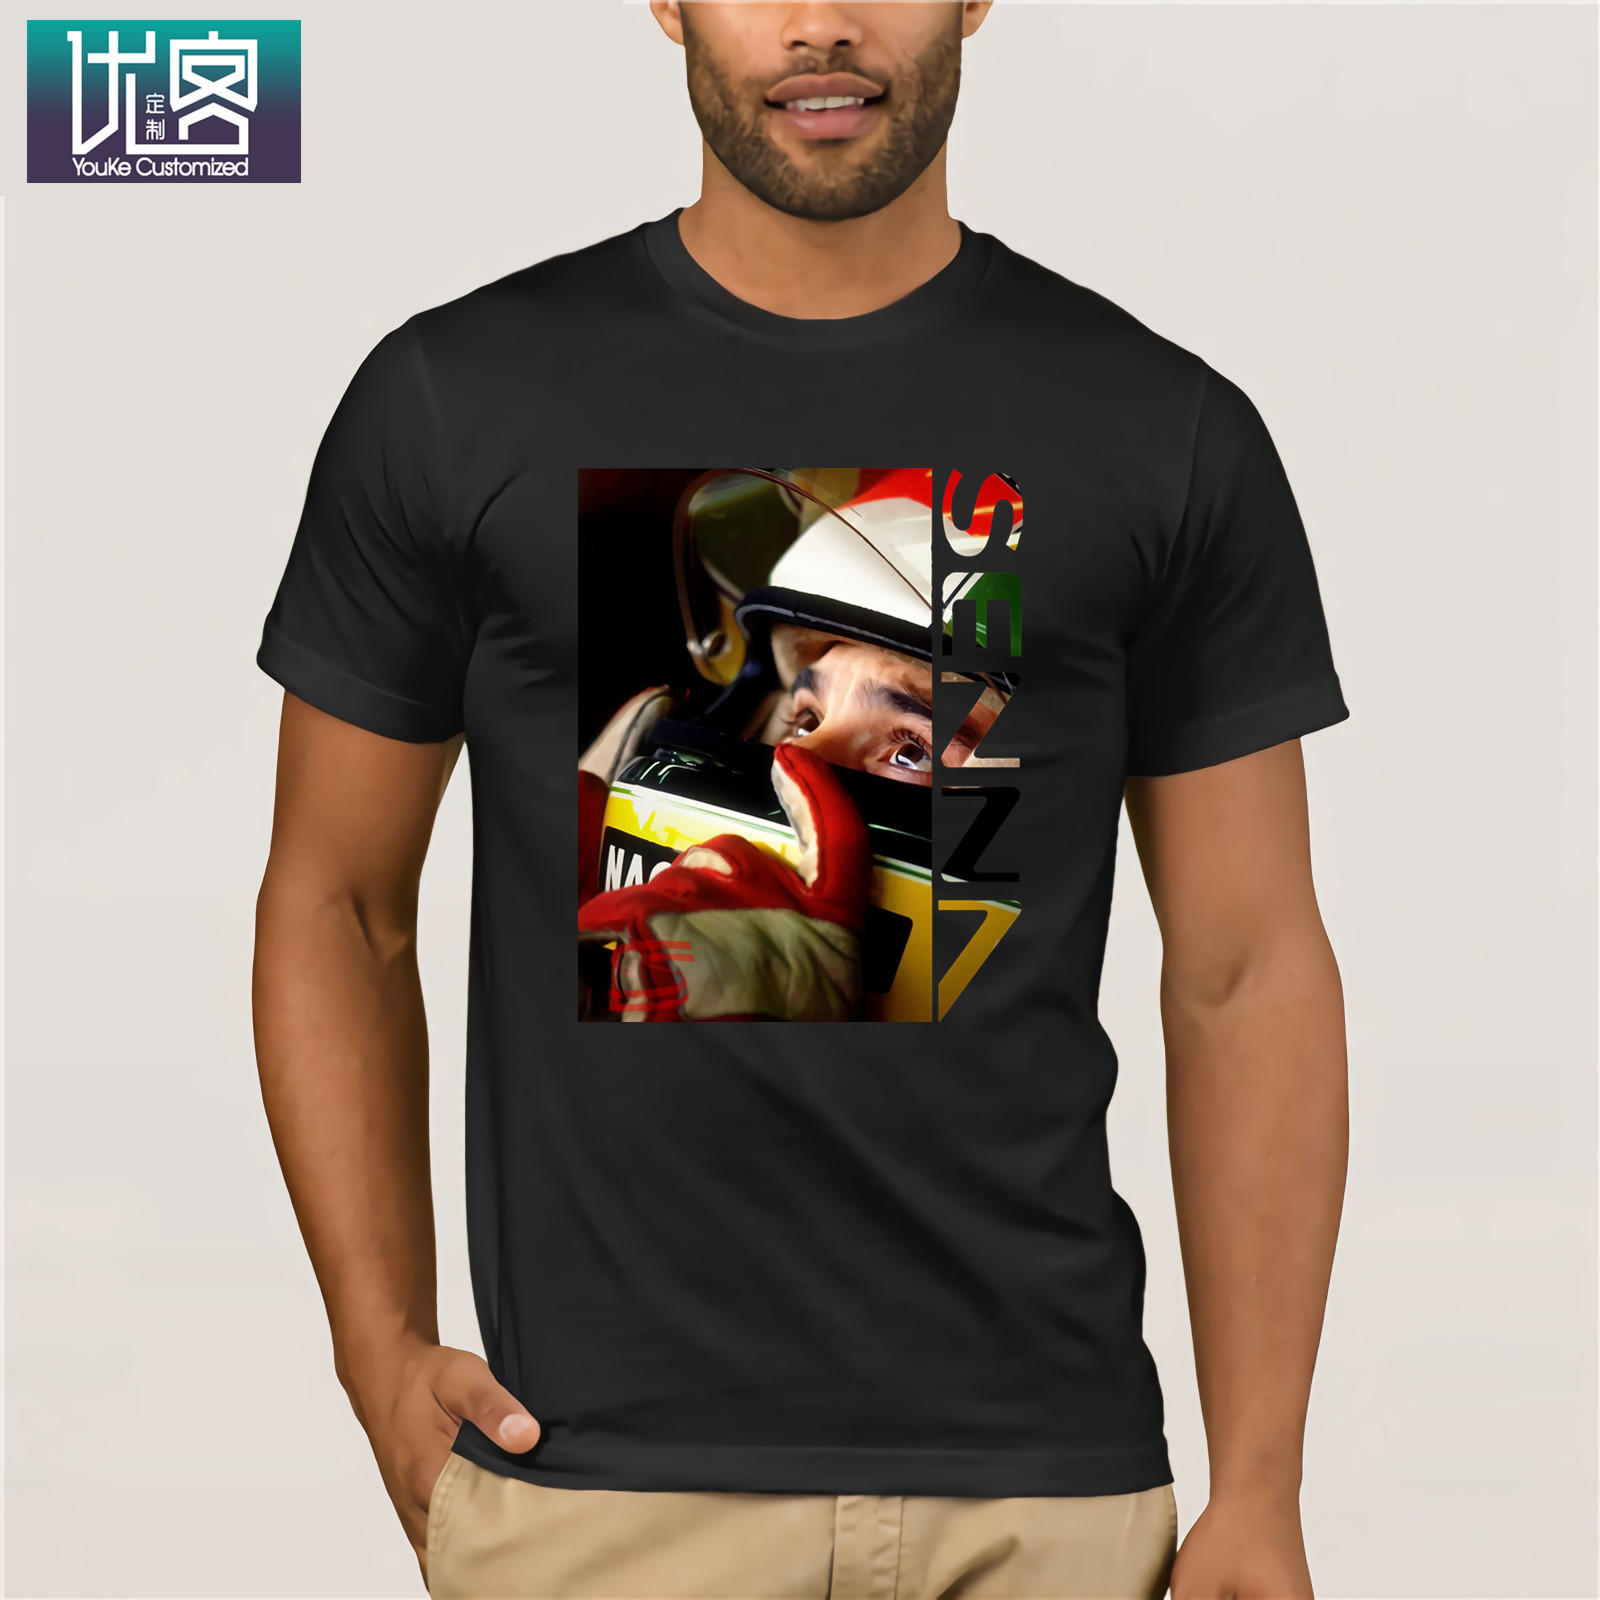 ayrton-font-b-senna-b-font-t-shirt-clothes-popular-t-shirt-crewneck-100-cotton-tees-tops-summer-tees-cotton-o-neck-t-s-vintage-crew-neck